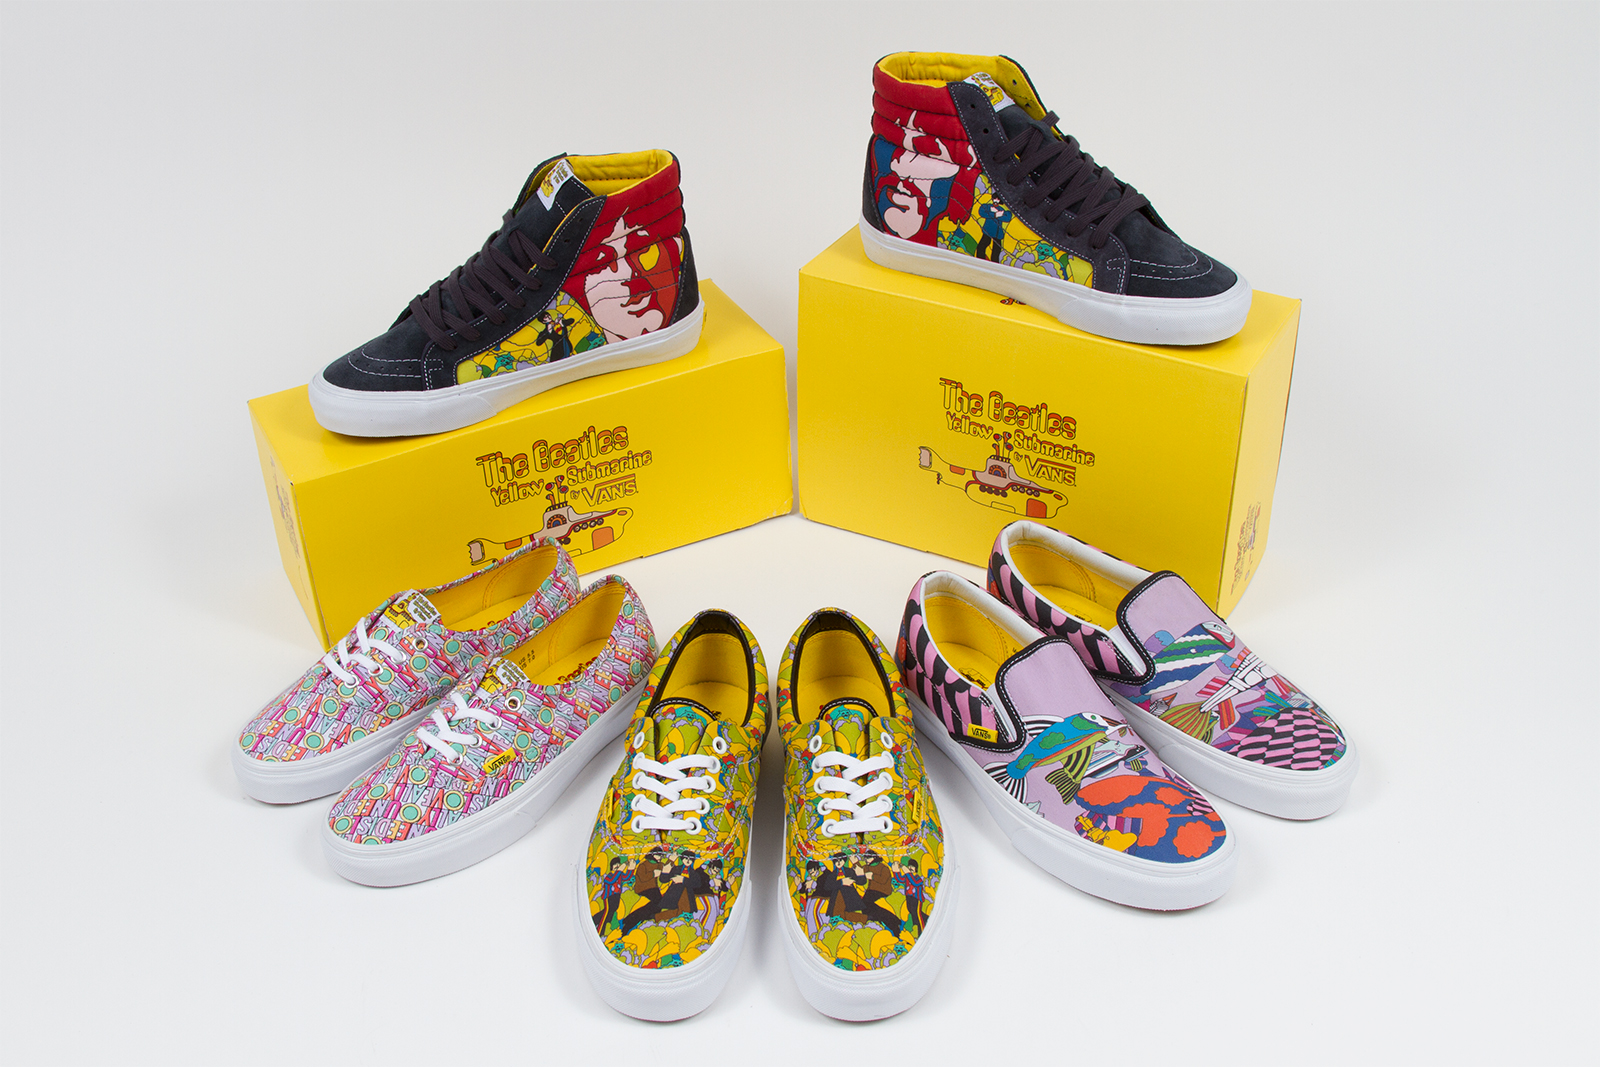 The-Beatles-Yellow-Submarine-by-Vans-for-Spring-2014